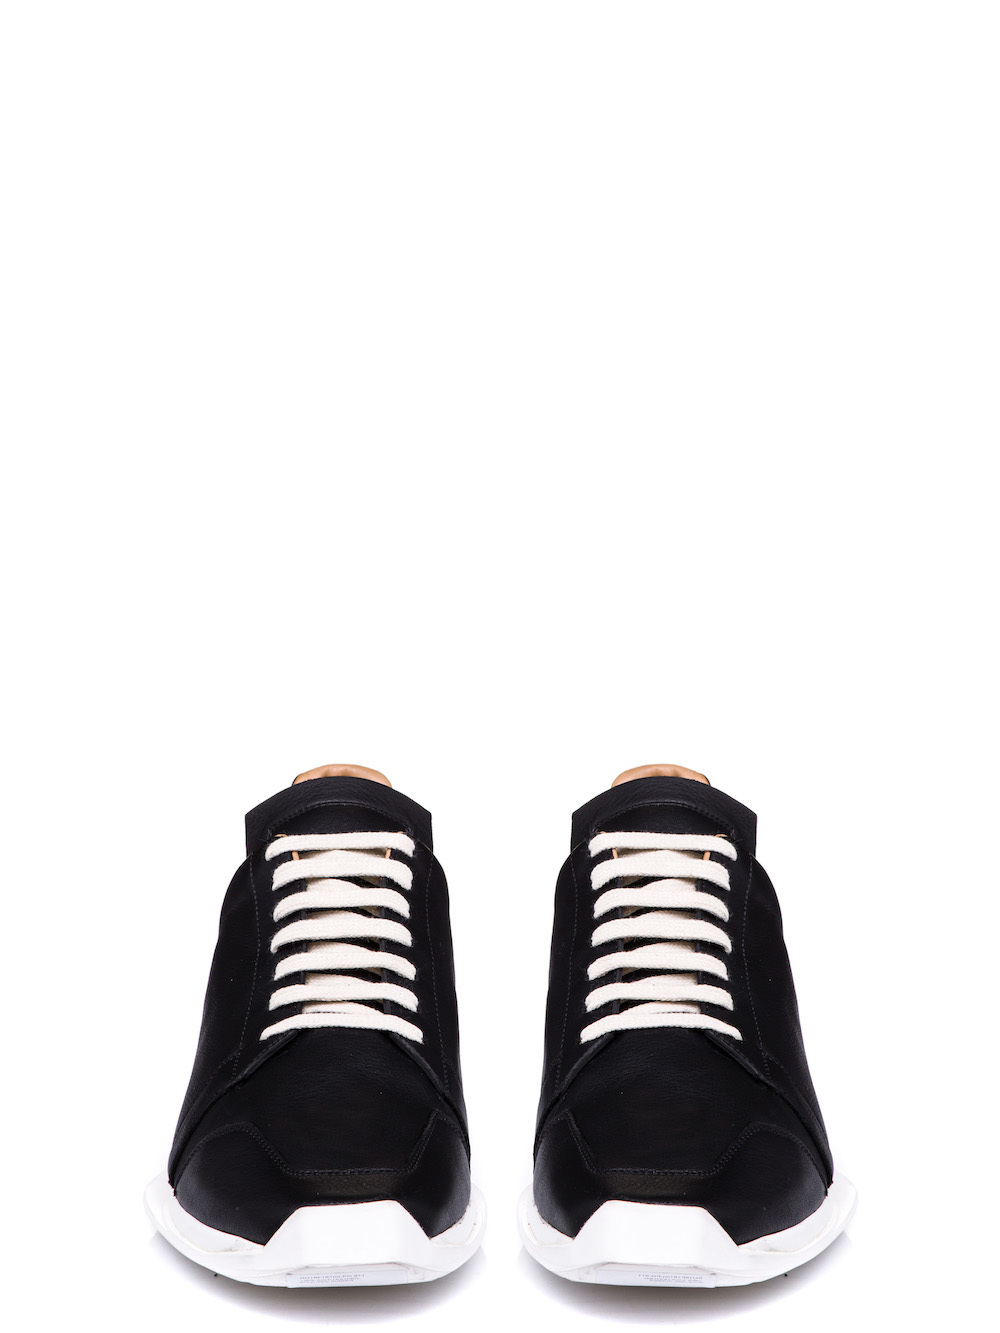 RICK OWENS OBLIQUE LACE-UP RUNNERS IN BLACK CALF LEATHER